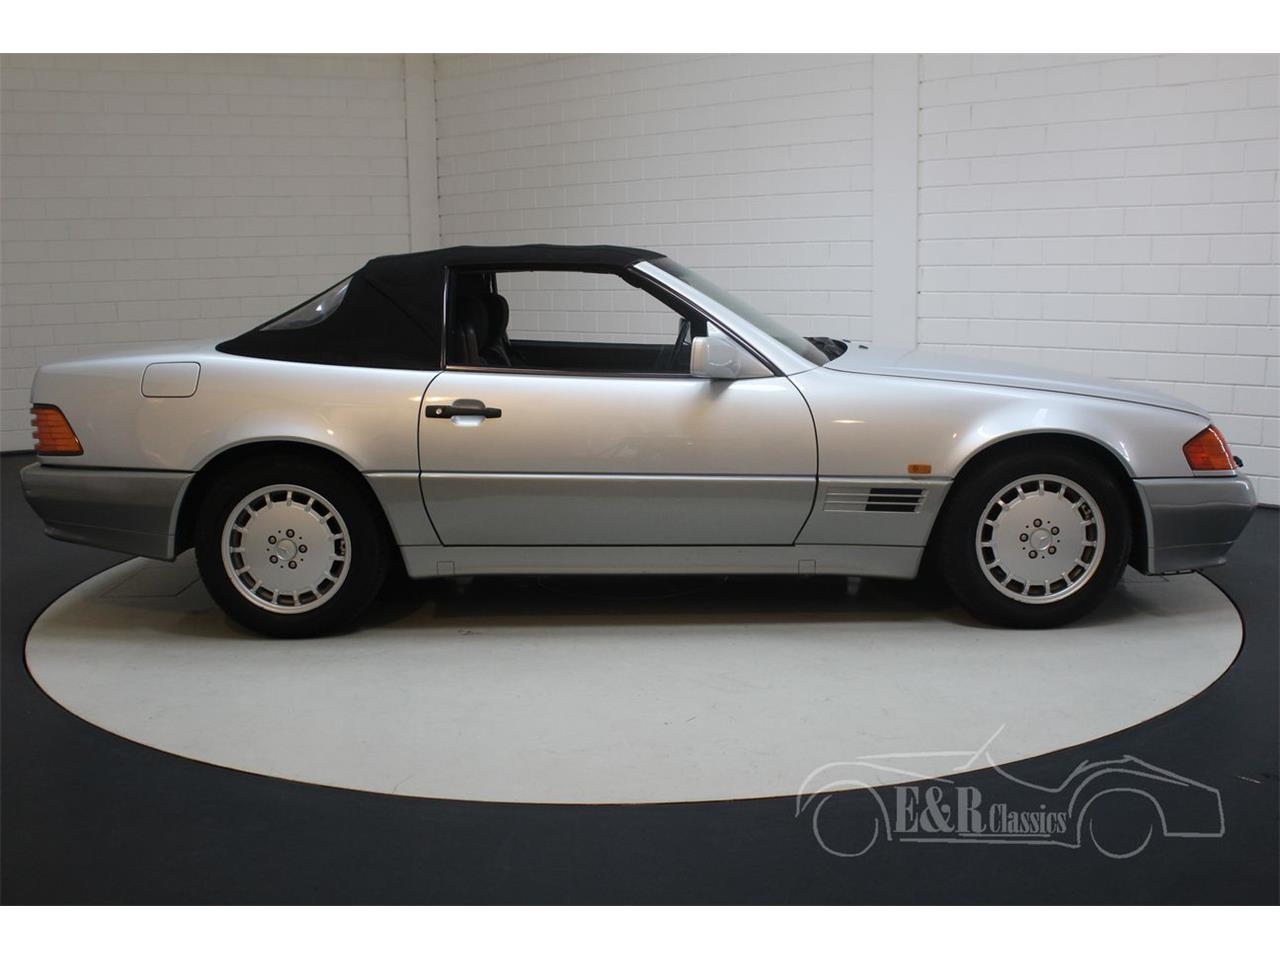 Large Picture of 1991 Mercedes-Benz 500SL located in Waalwijk noord brabant - Q33D